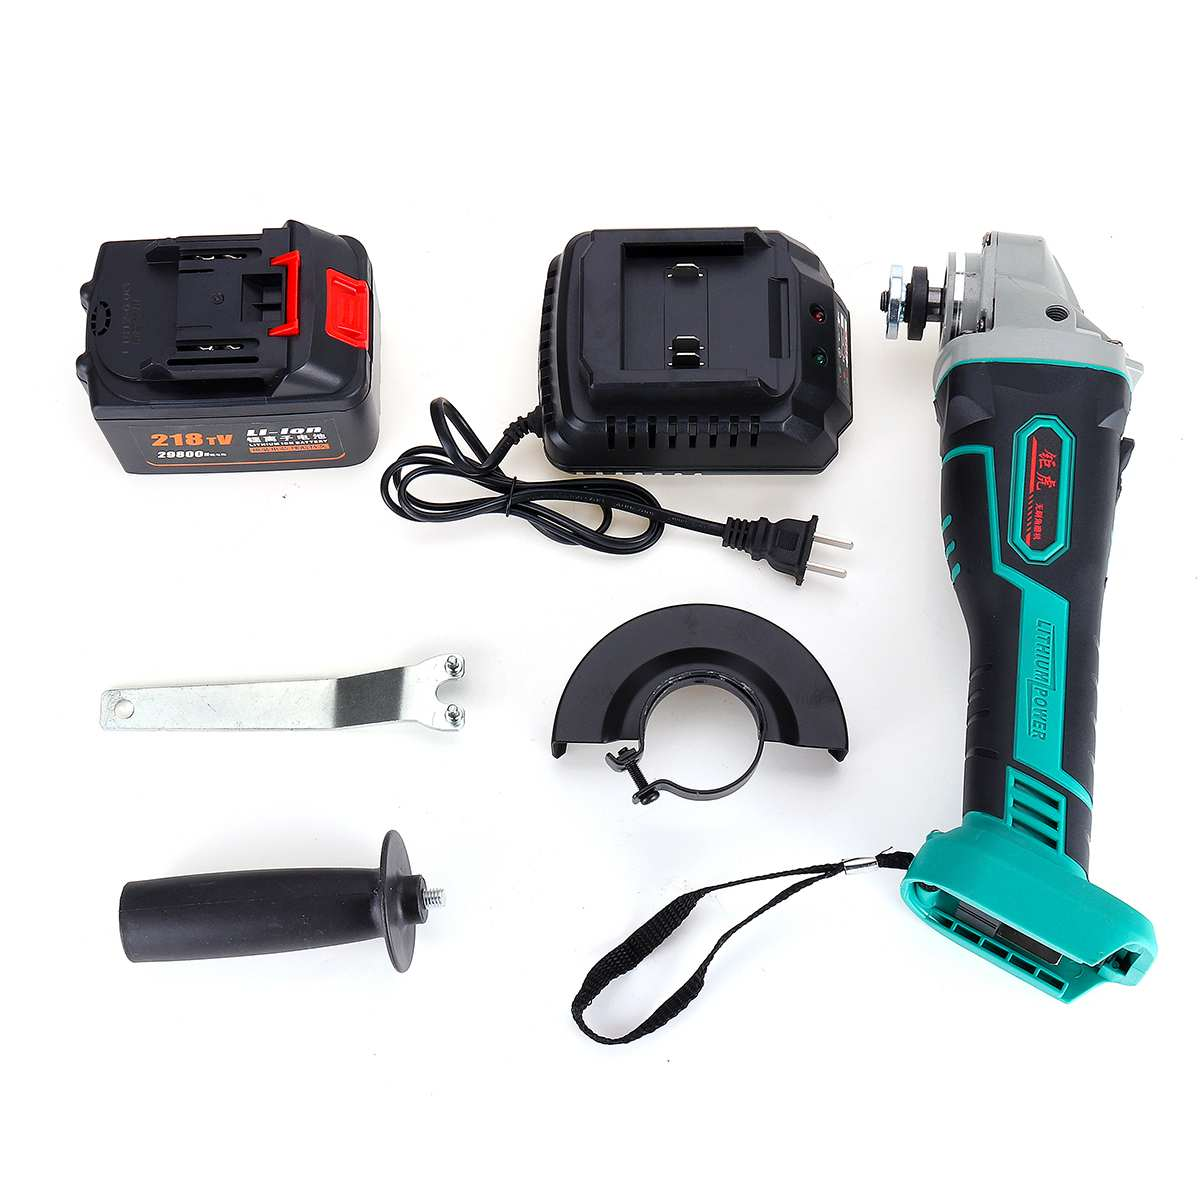 Rechargeable 218TV 29800mah 600W Wireless Electric Angle Grinder Power Cutting Tool Li ion Batter Bracket Polishing Grinder